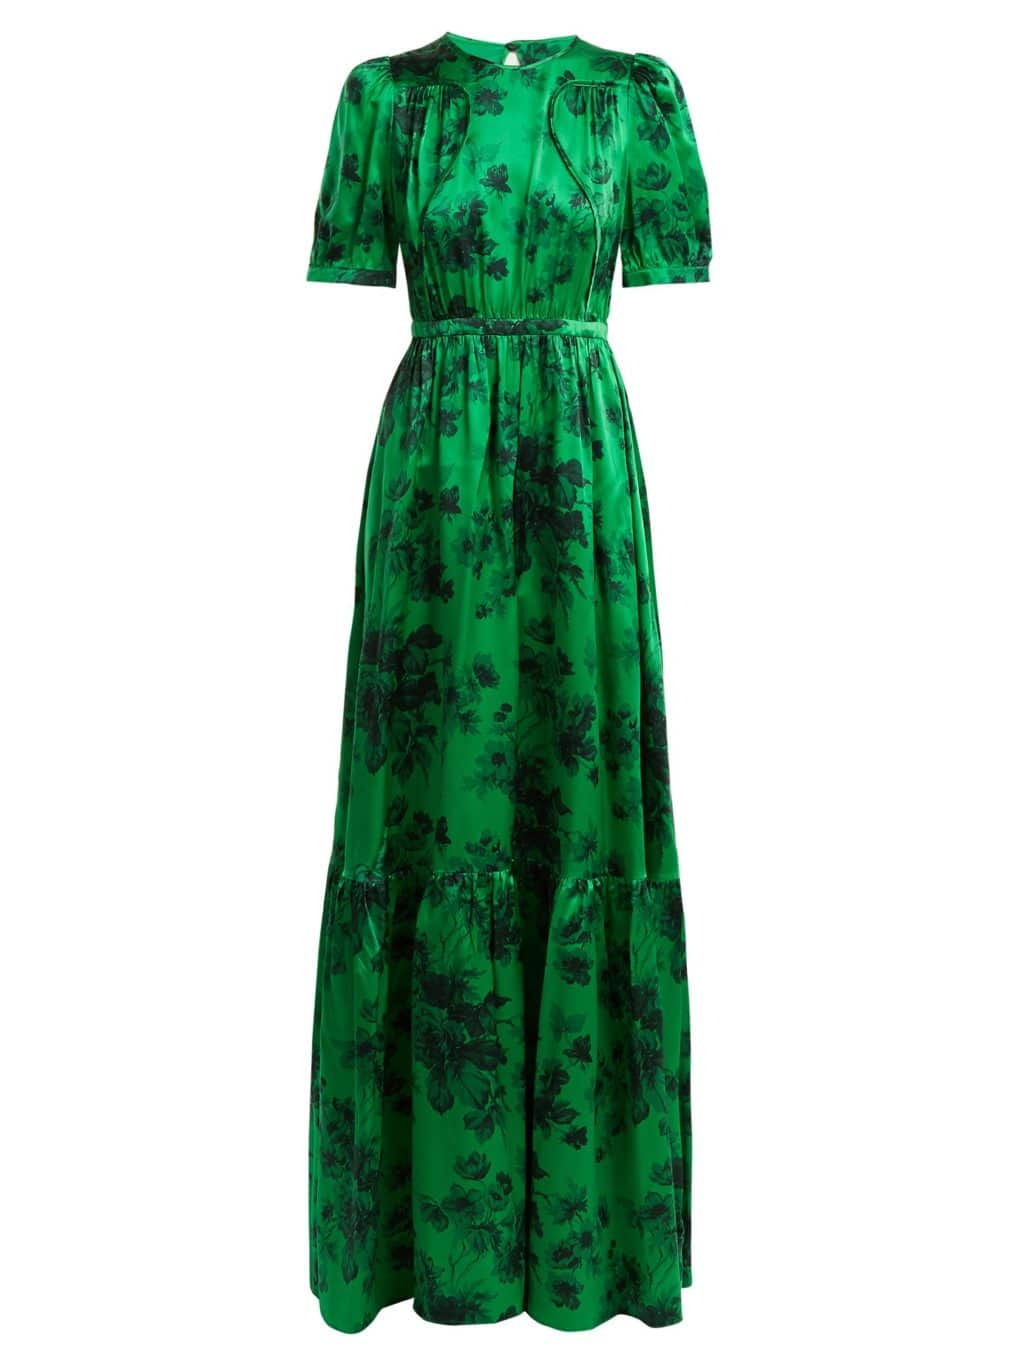 NO. 21 Silk Satin Emerald Green / Floral Printed Gown